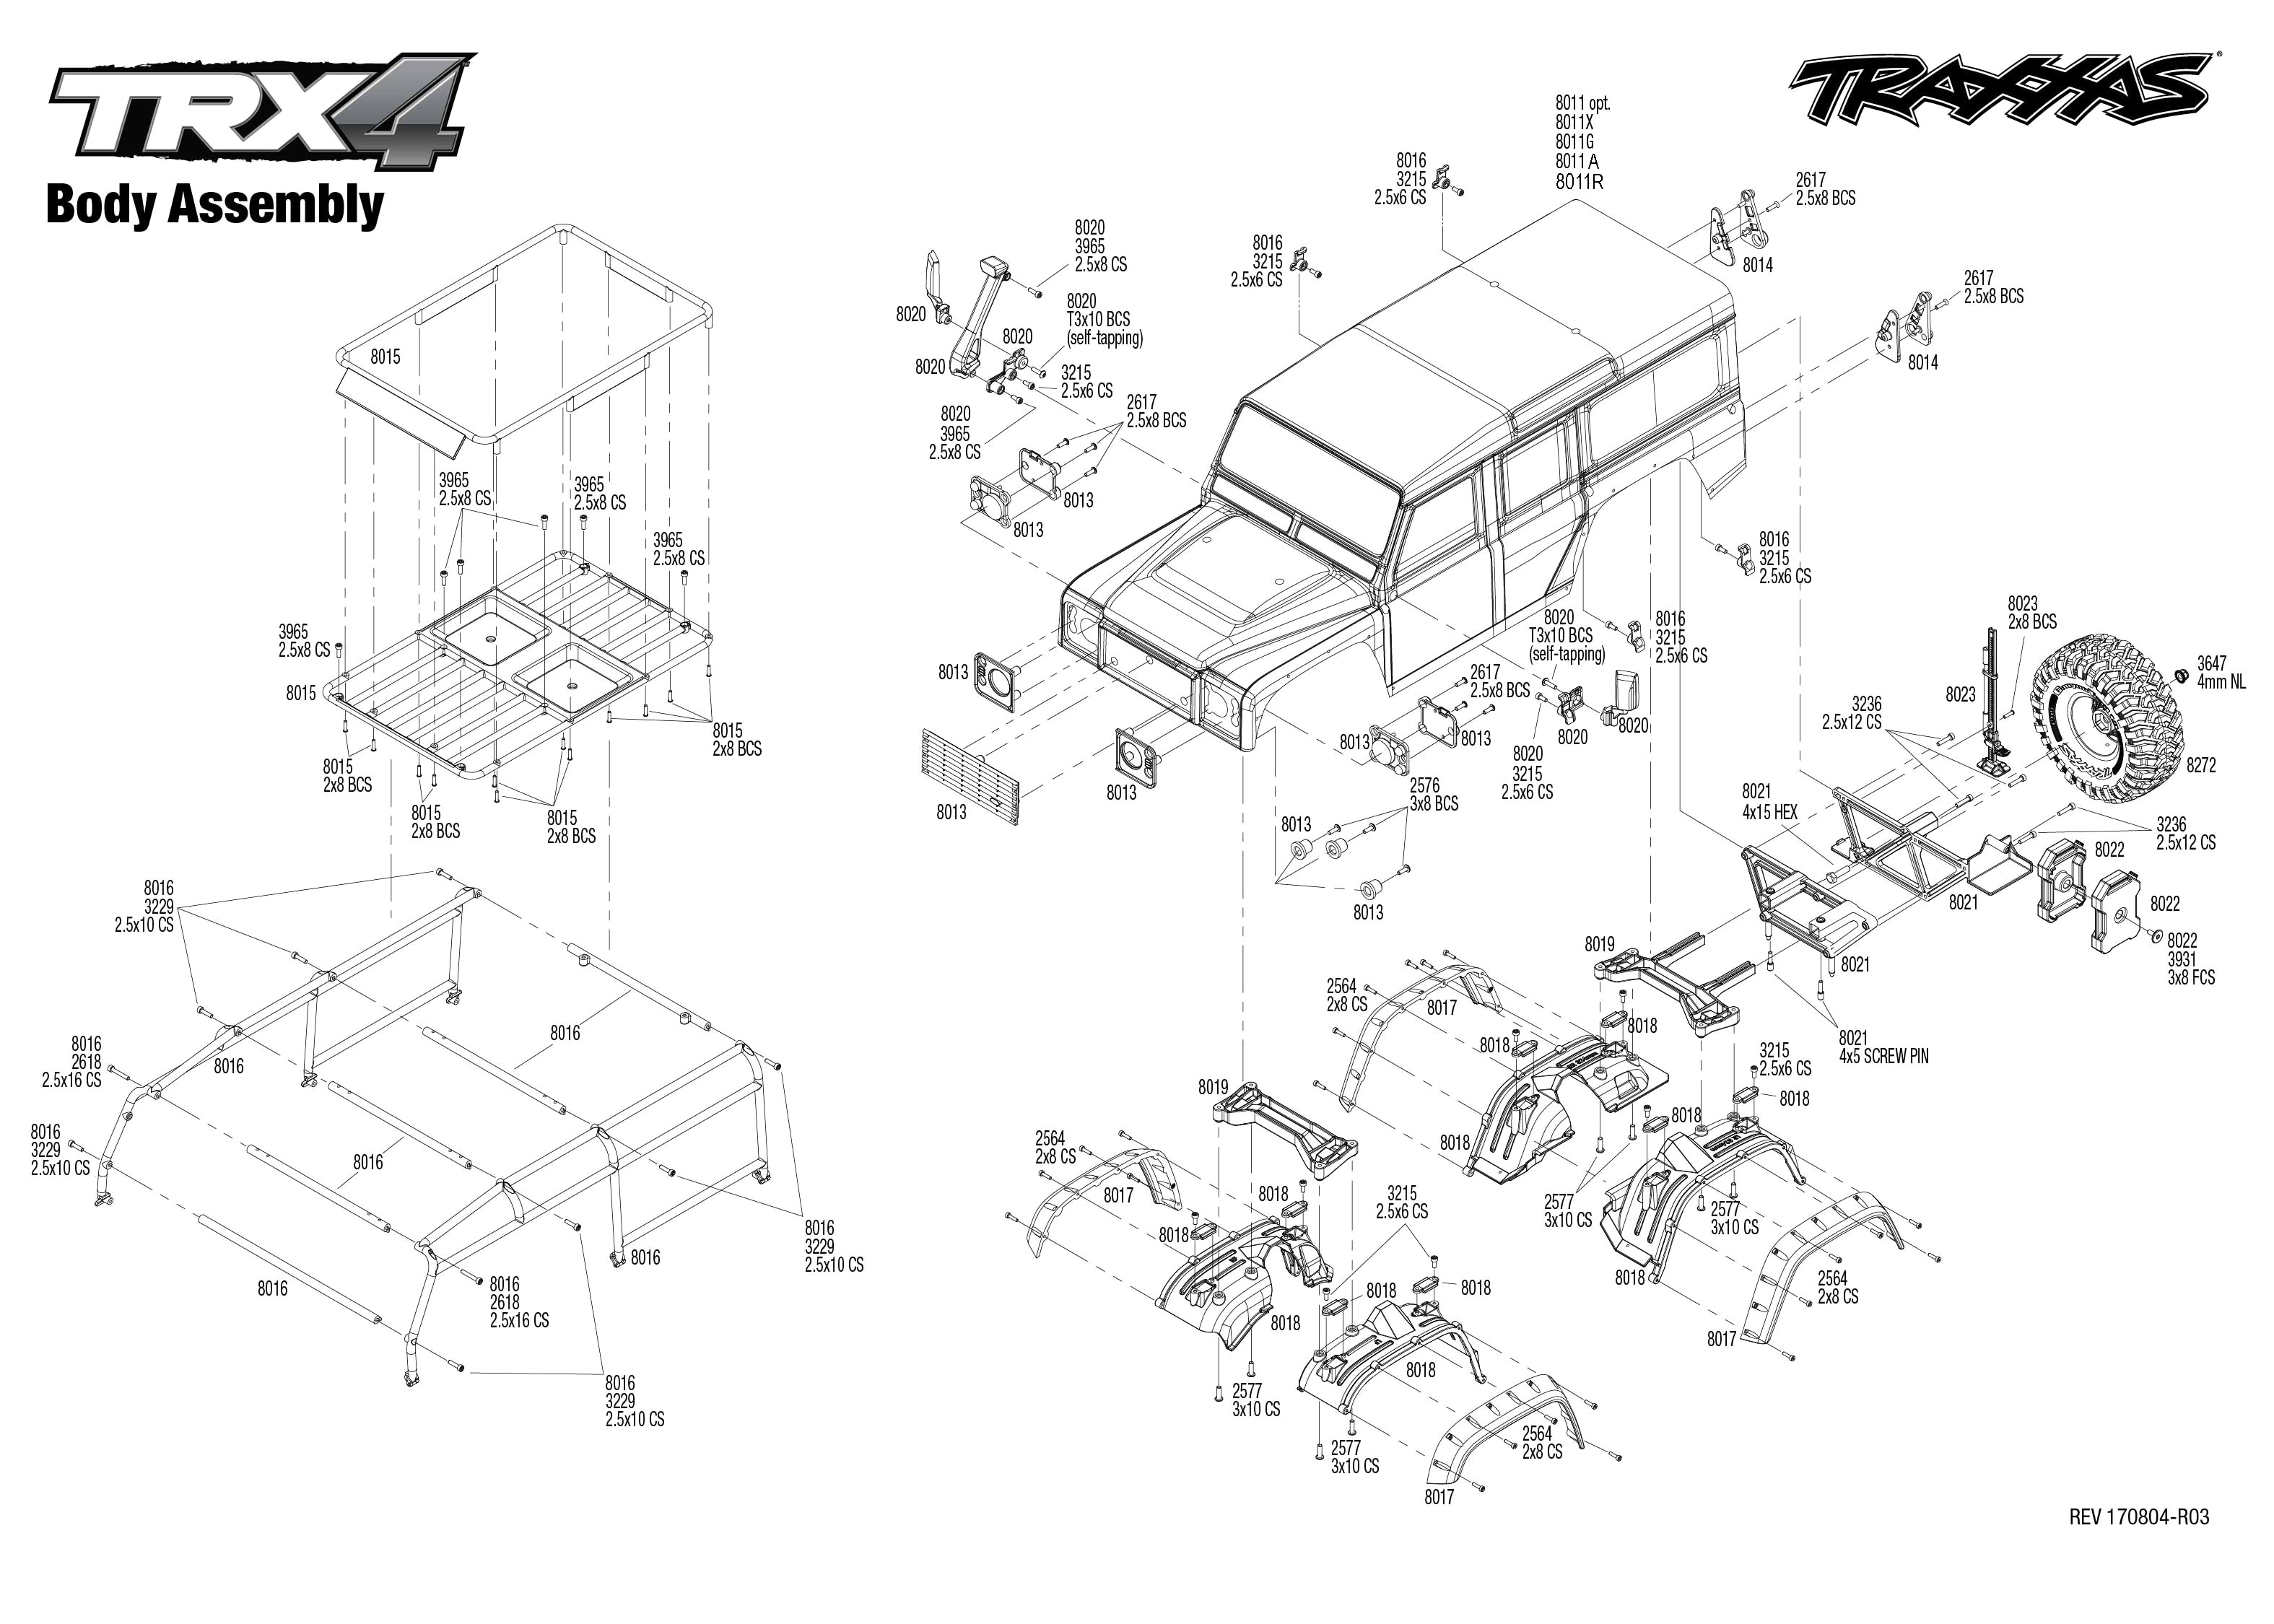 Land Rover Parts Diagram Electrical Schematics Lr3 2005 Wiring Diagrams In Depth U2022 Recall